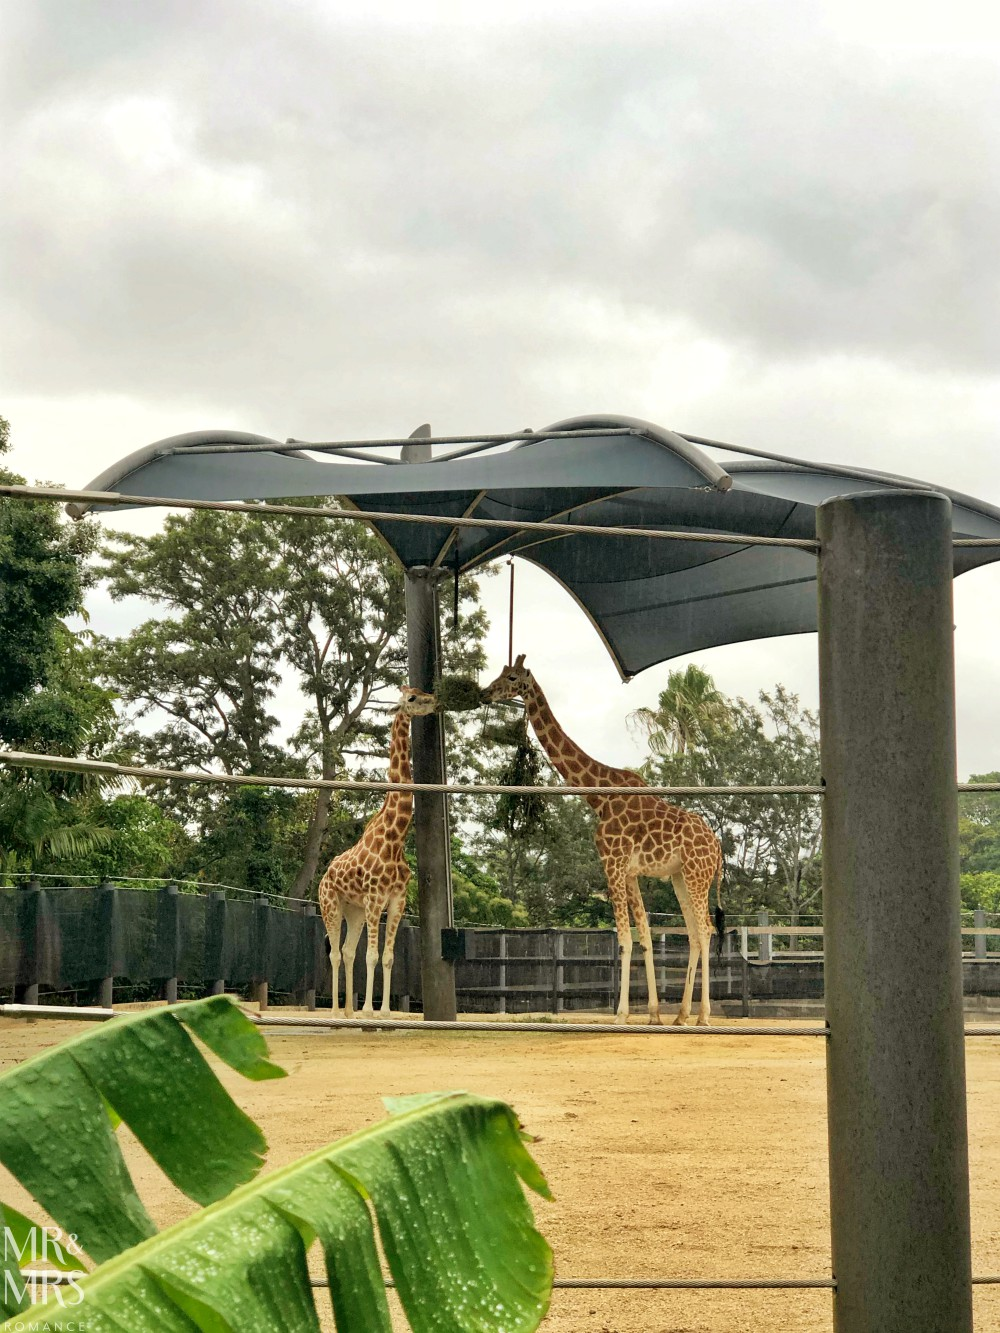 Weekly Edition - Twilight at Taronga concert - giraffes